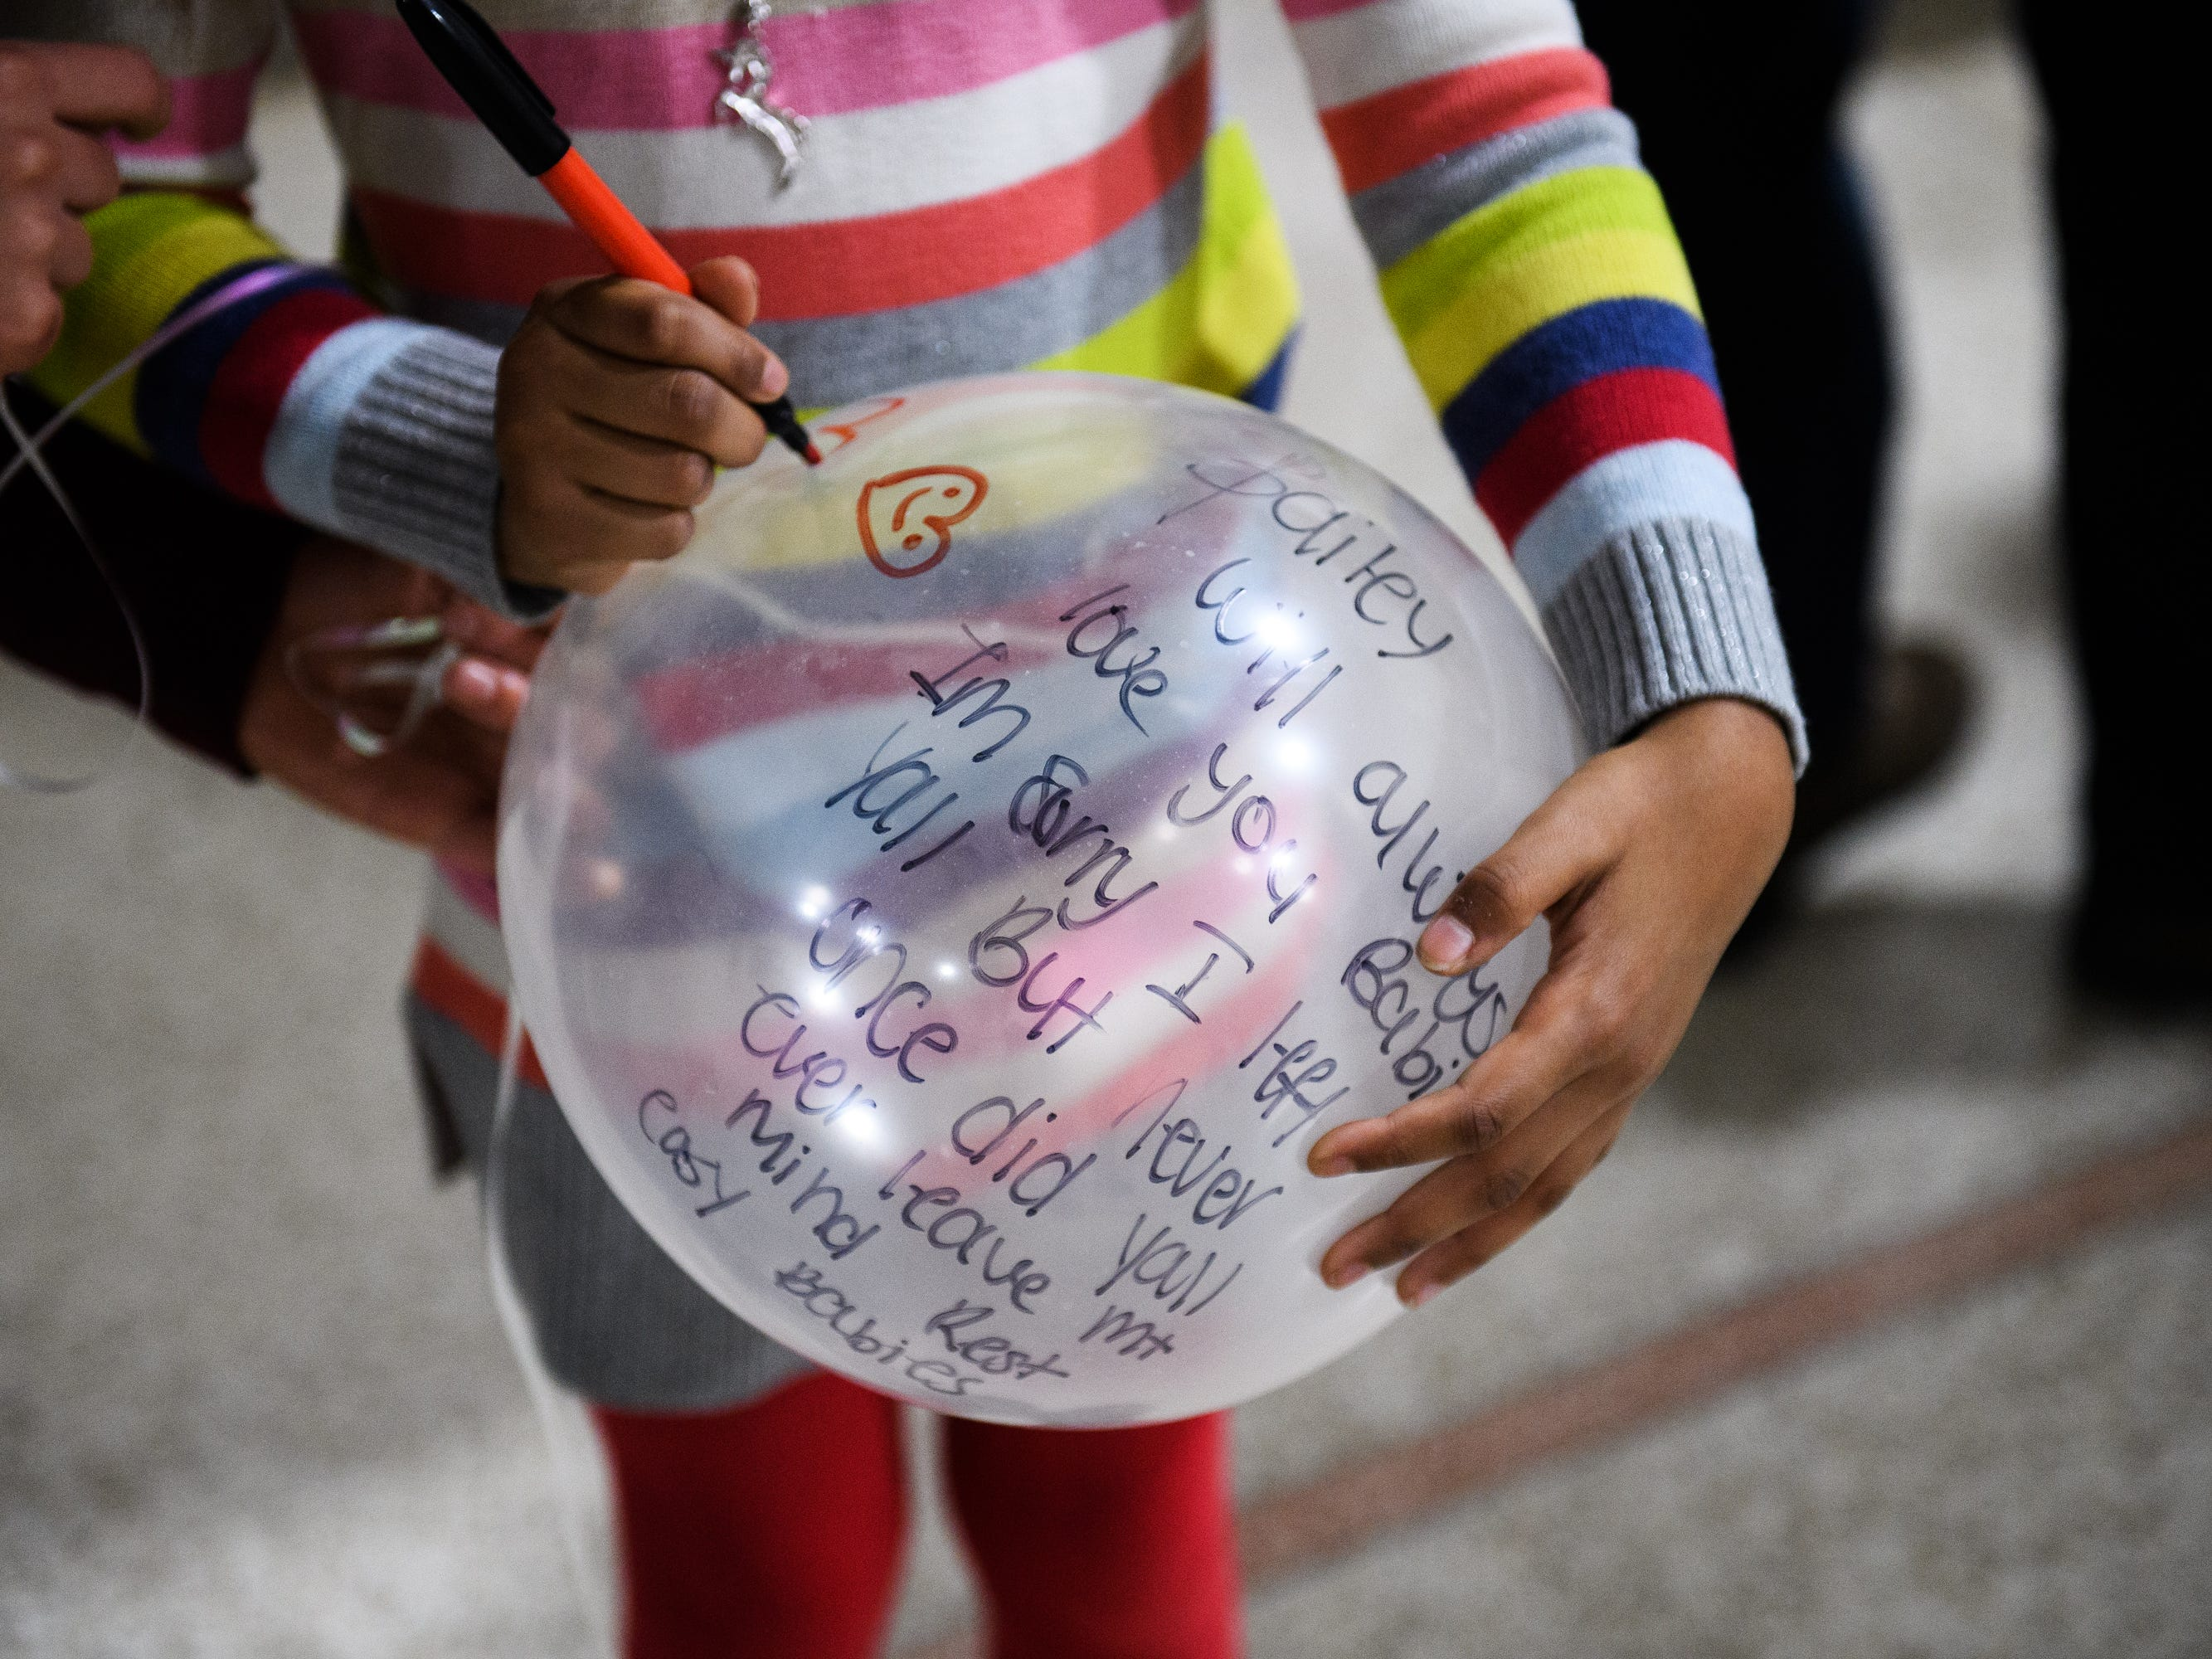 Many Lofton, 6, writes a message on a balloon during a vigil for siblings Arnez Yaron Jamison, Jr., 4, Robbiana Evans, 6, Jamire Halley, 8, and Ar'mani Jamison, 2, at Clearview Baptist Church on Friday, Dec. 14, 2018.